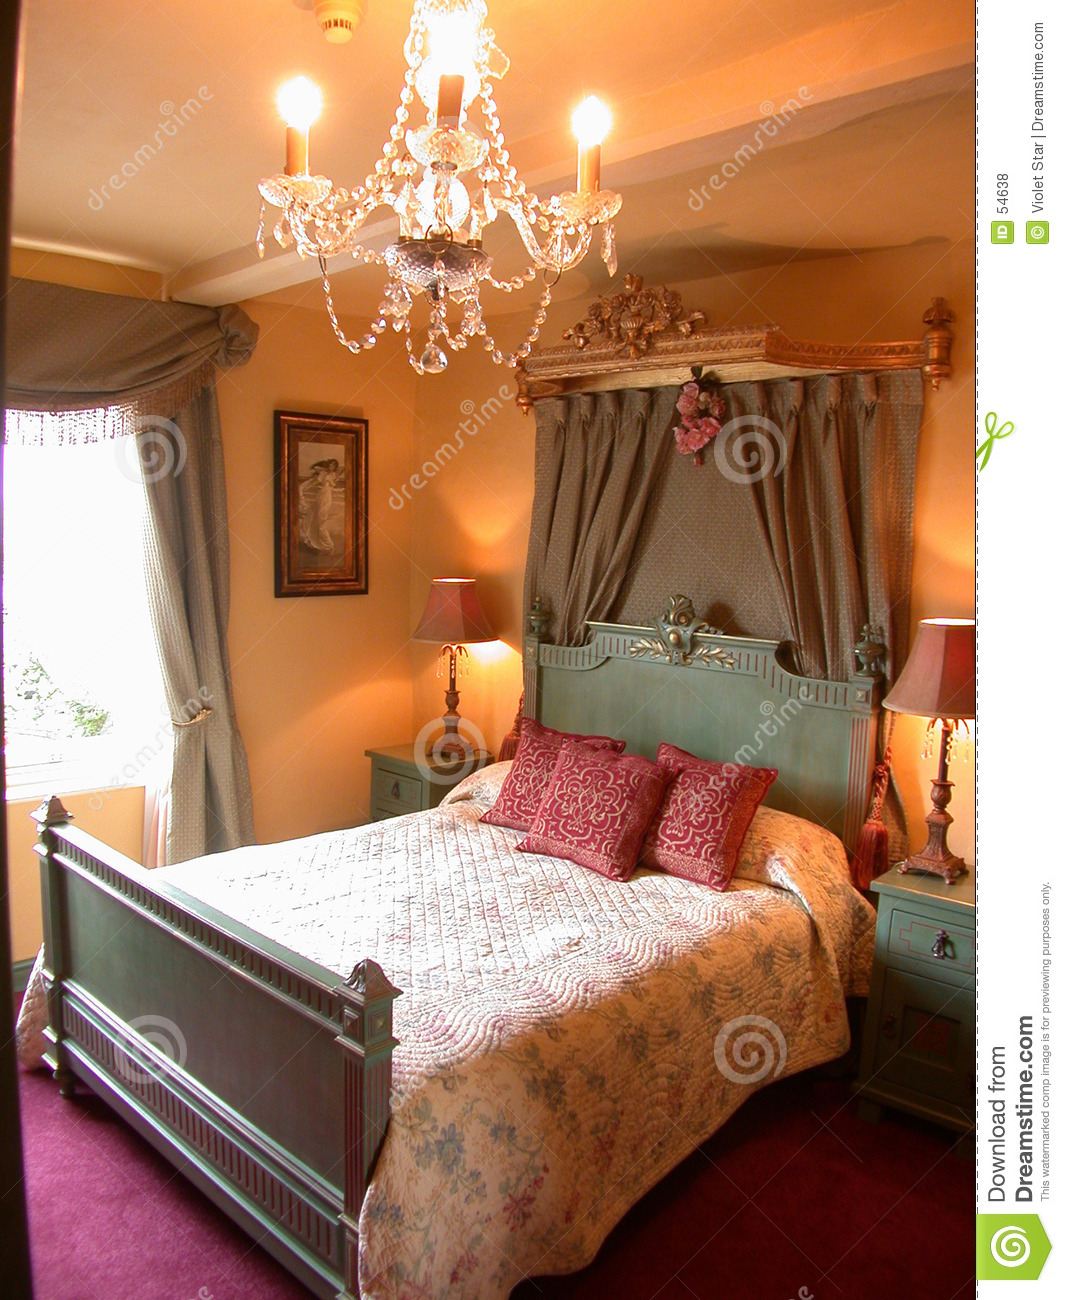 Romantic bedroom stock photo Image of romance bedroom